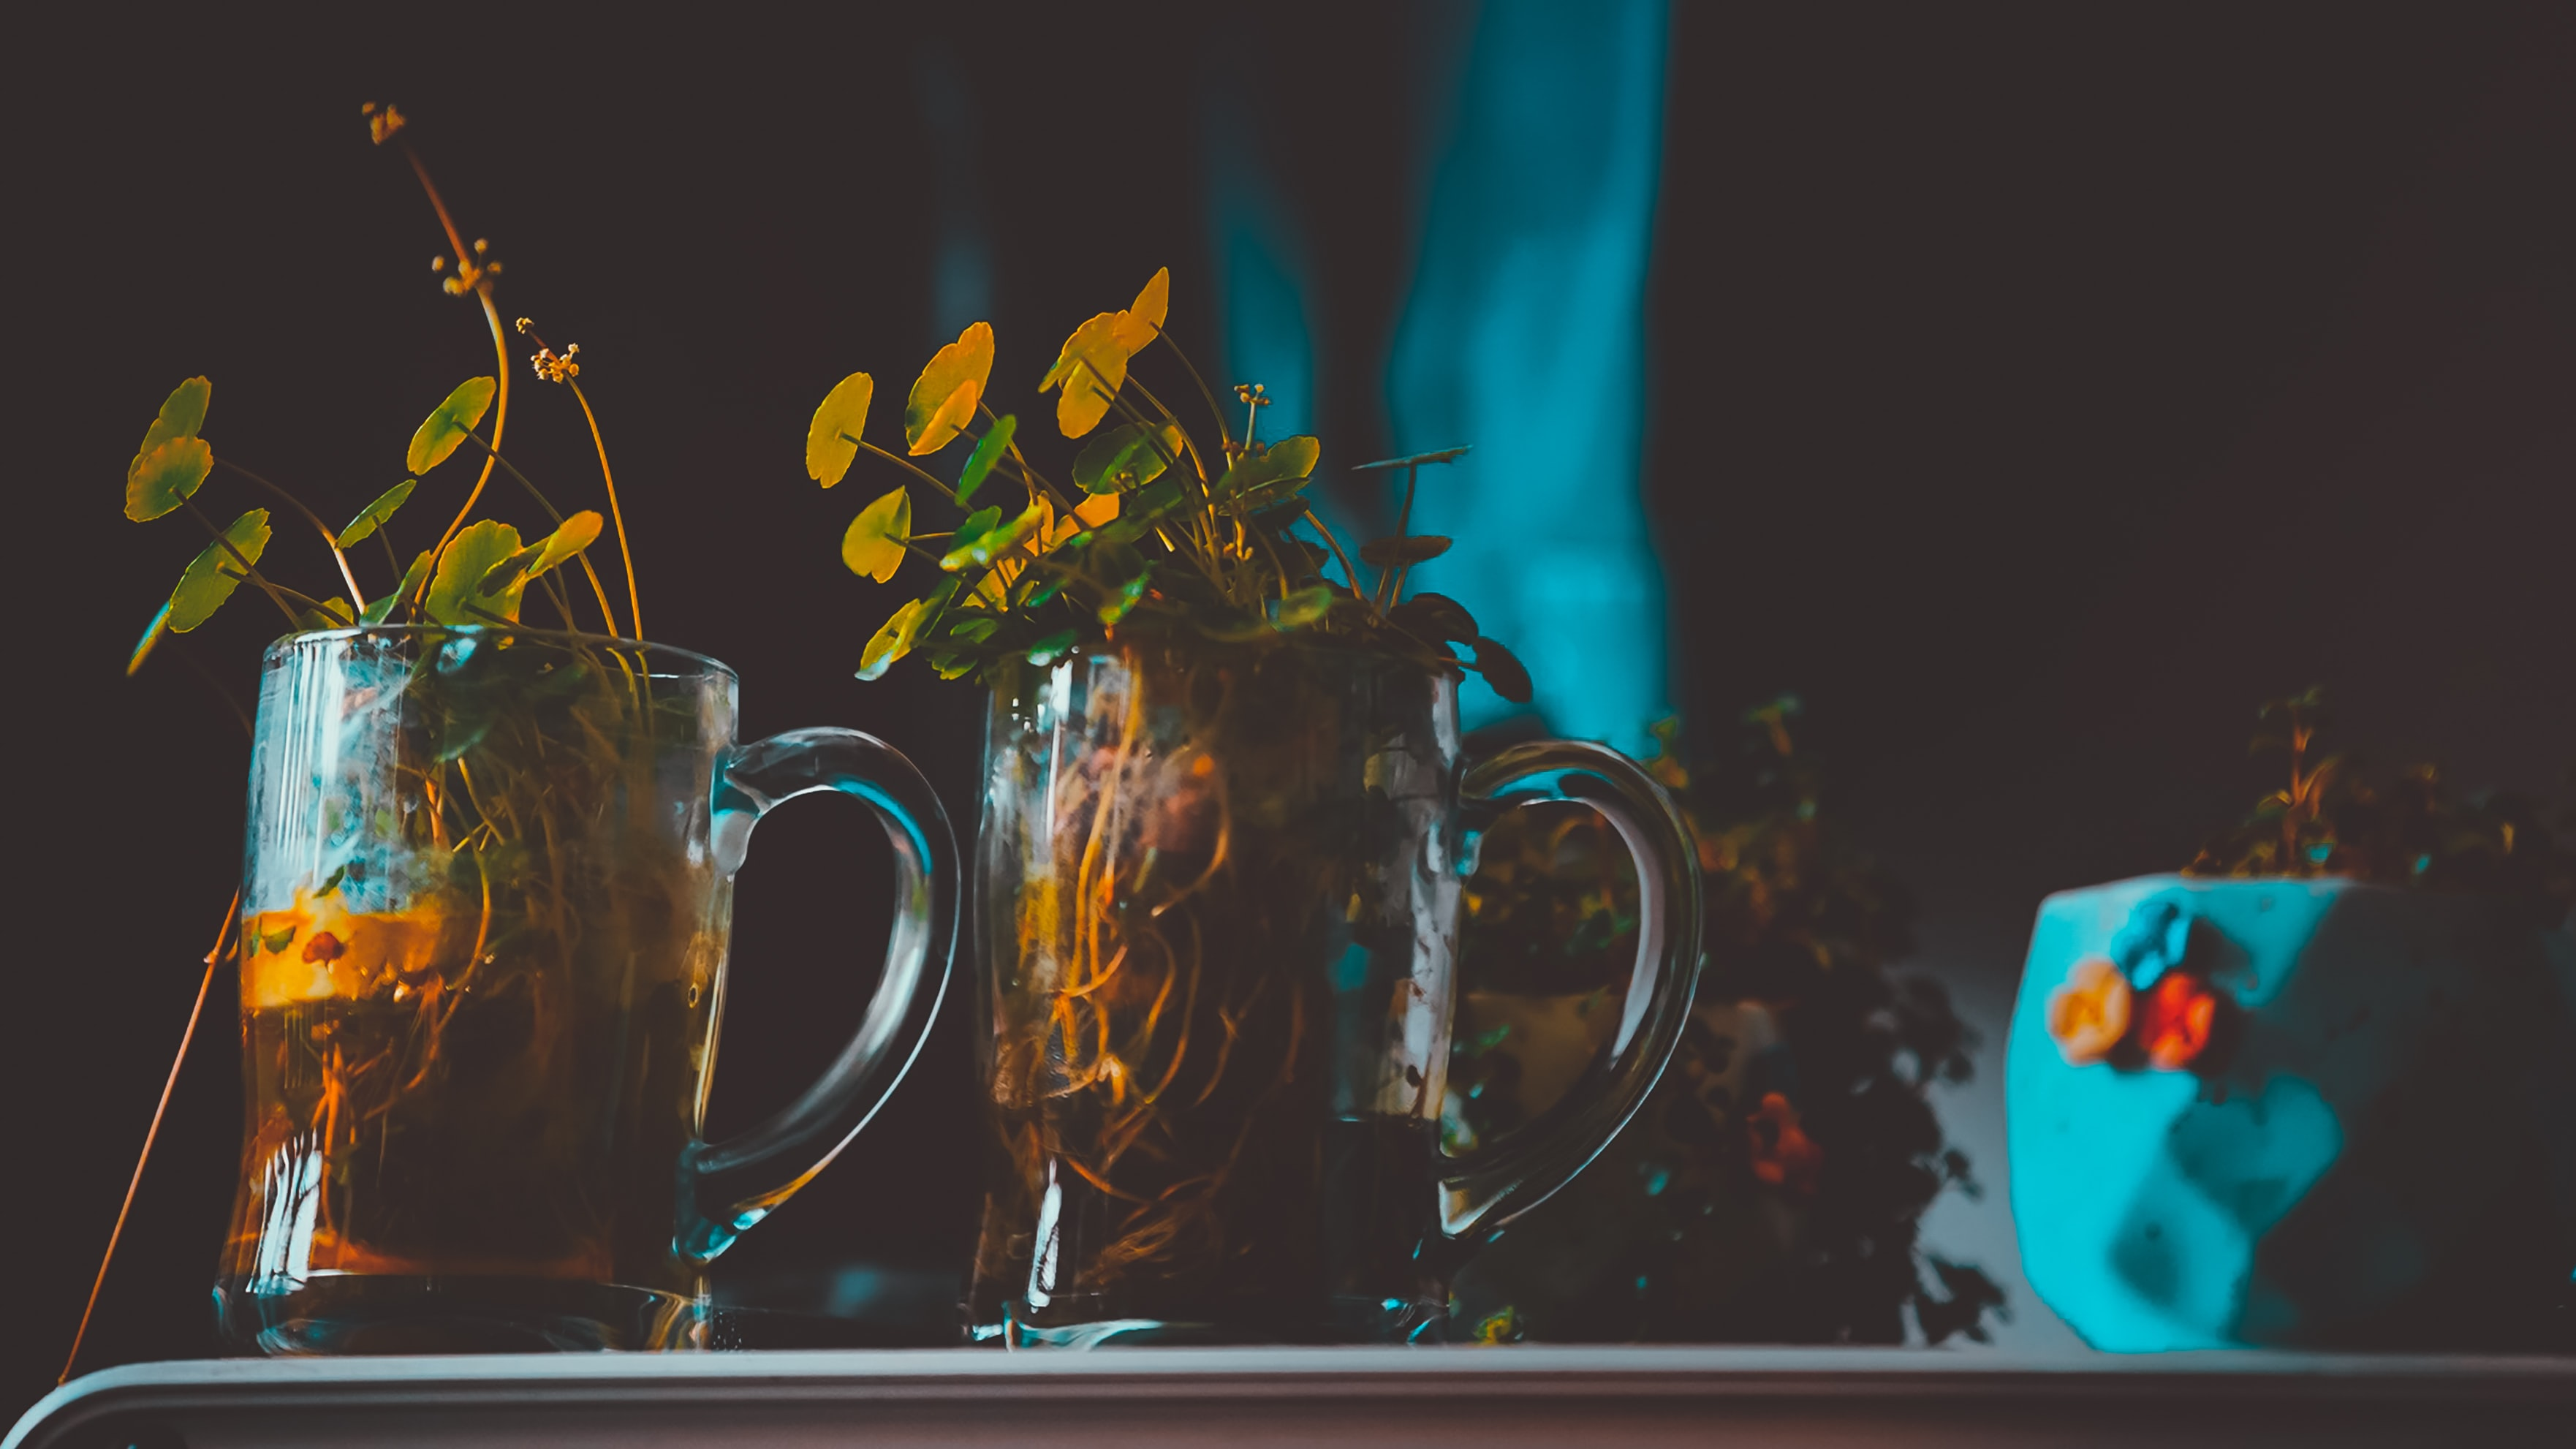 green leafed plants in glass tankards